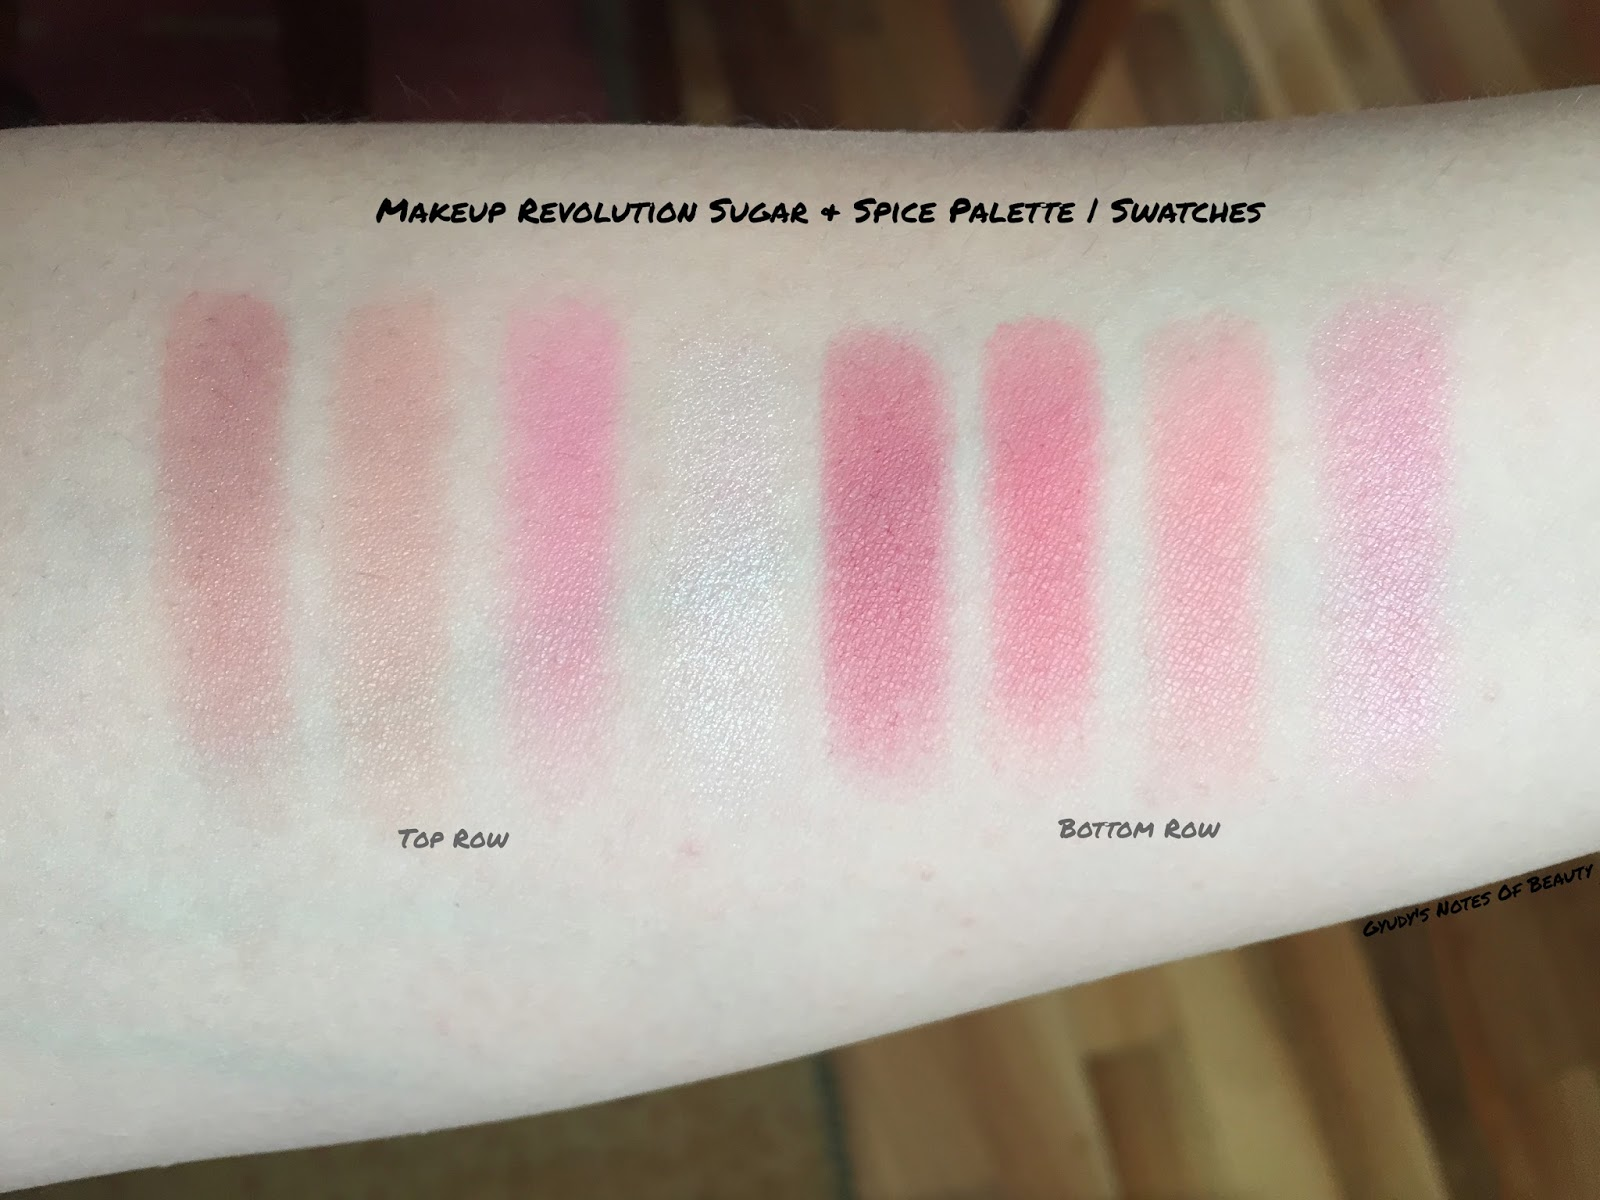 Makeup Revolution Swatches Sugar and Spice Ultra Blush Palette